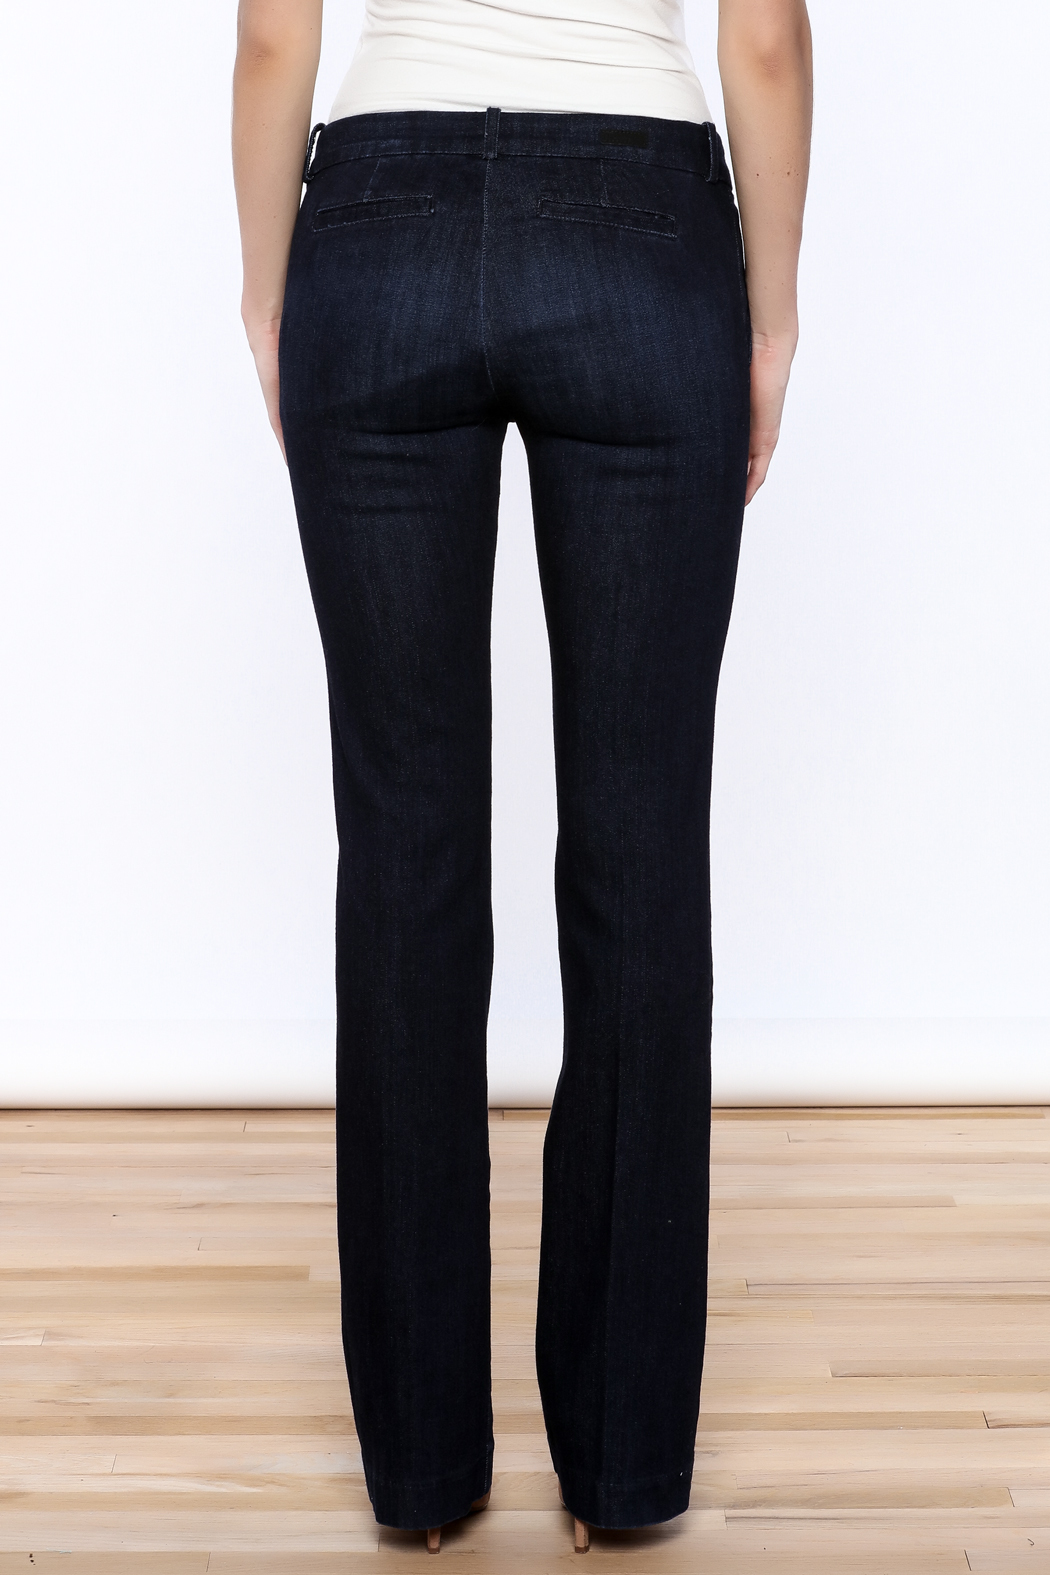 Kut from the Kloth Natalie Trouser Flare - Back Cropped Image